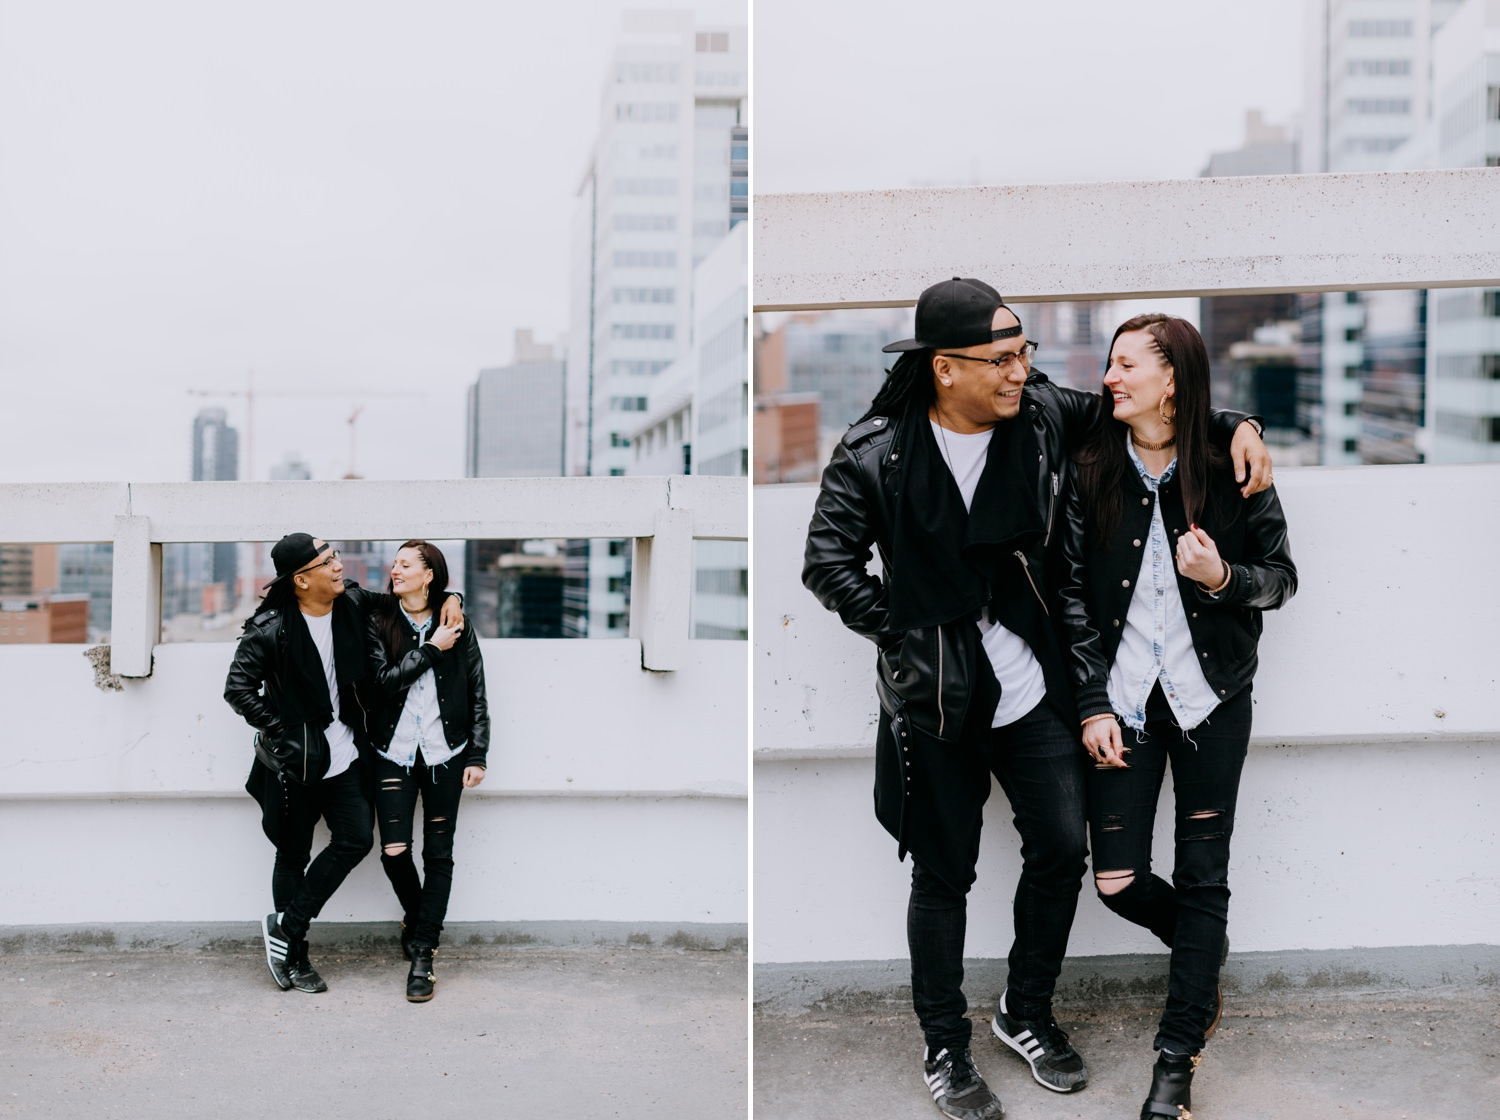 JC + Winston // Calgary Engagement Photographer, Luke Liable  // Victoria & Vancouver Island Wedding Photographer